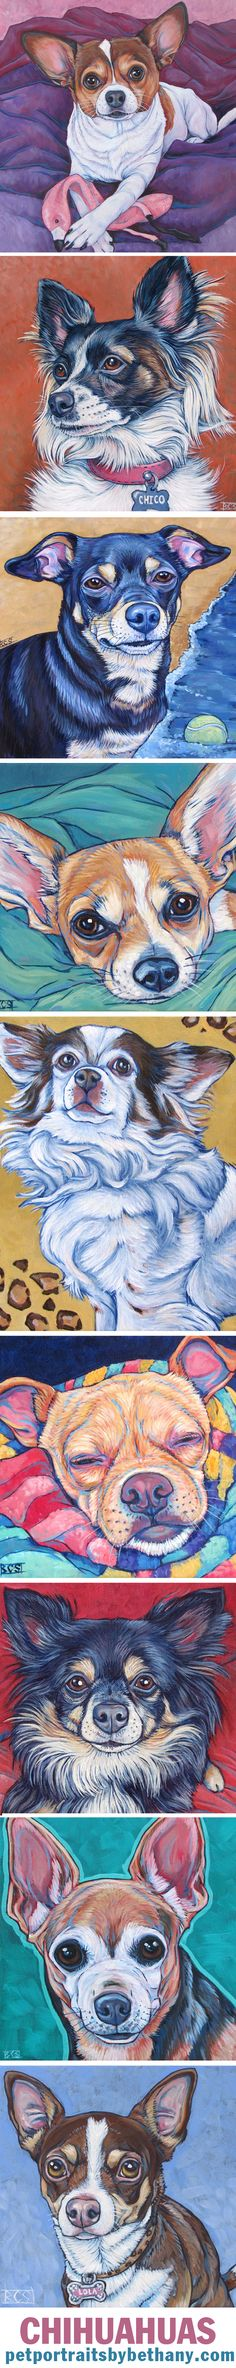 139df3cf2b8c Chihuahua Dogs Custom Pet Portrait Paintings in Acrylic Paint on Canvas  from Pets Chihuahua Art,